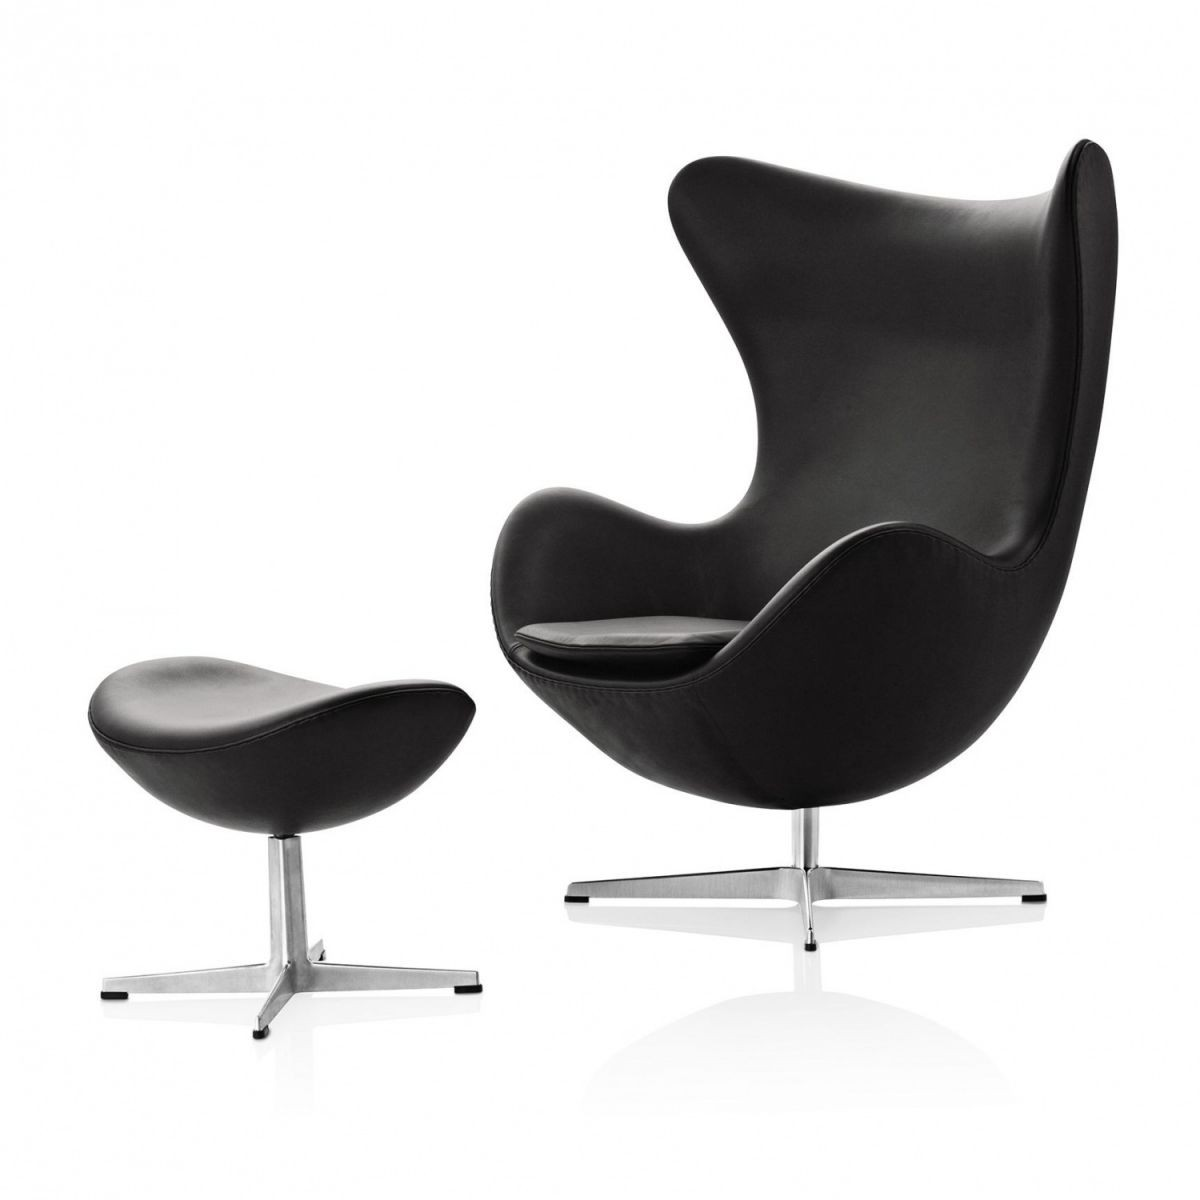 Affordable Egg Chair Fritz Hansen Egg Chair Das Ei Loungesessel Leder Von